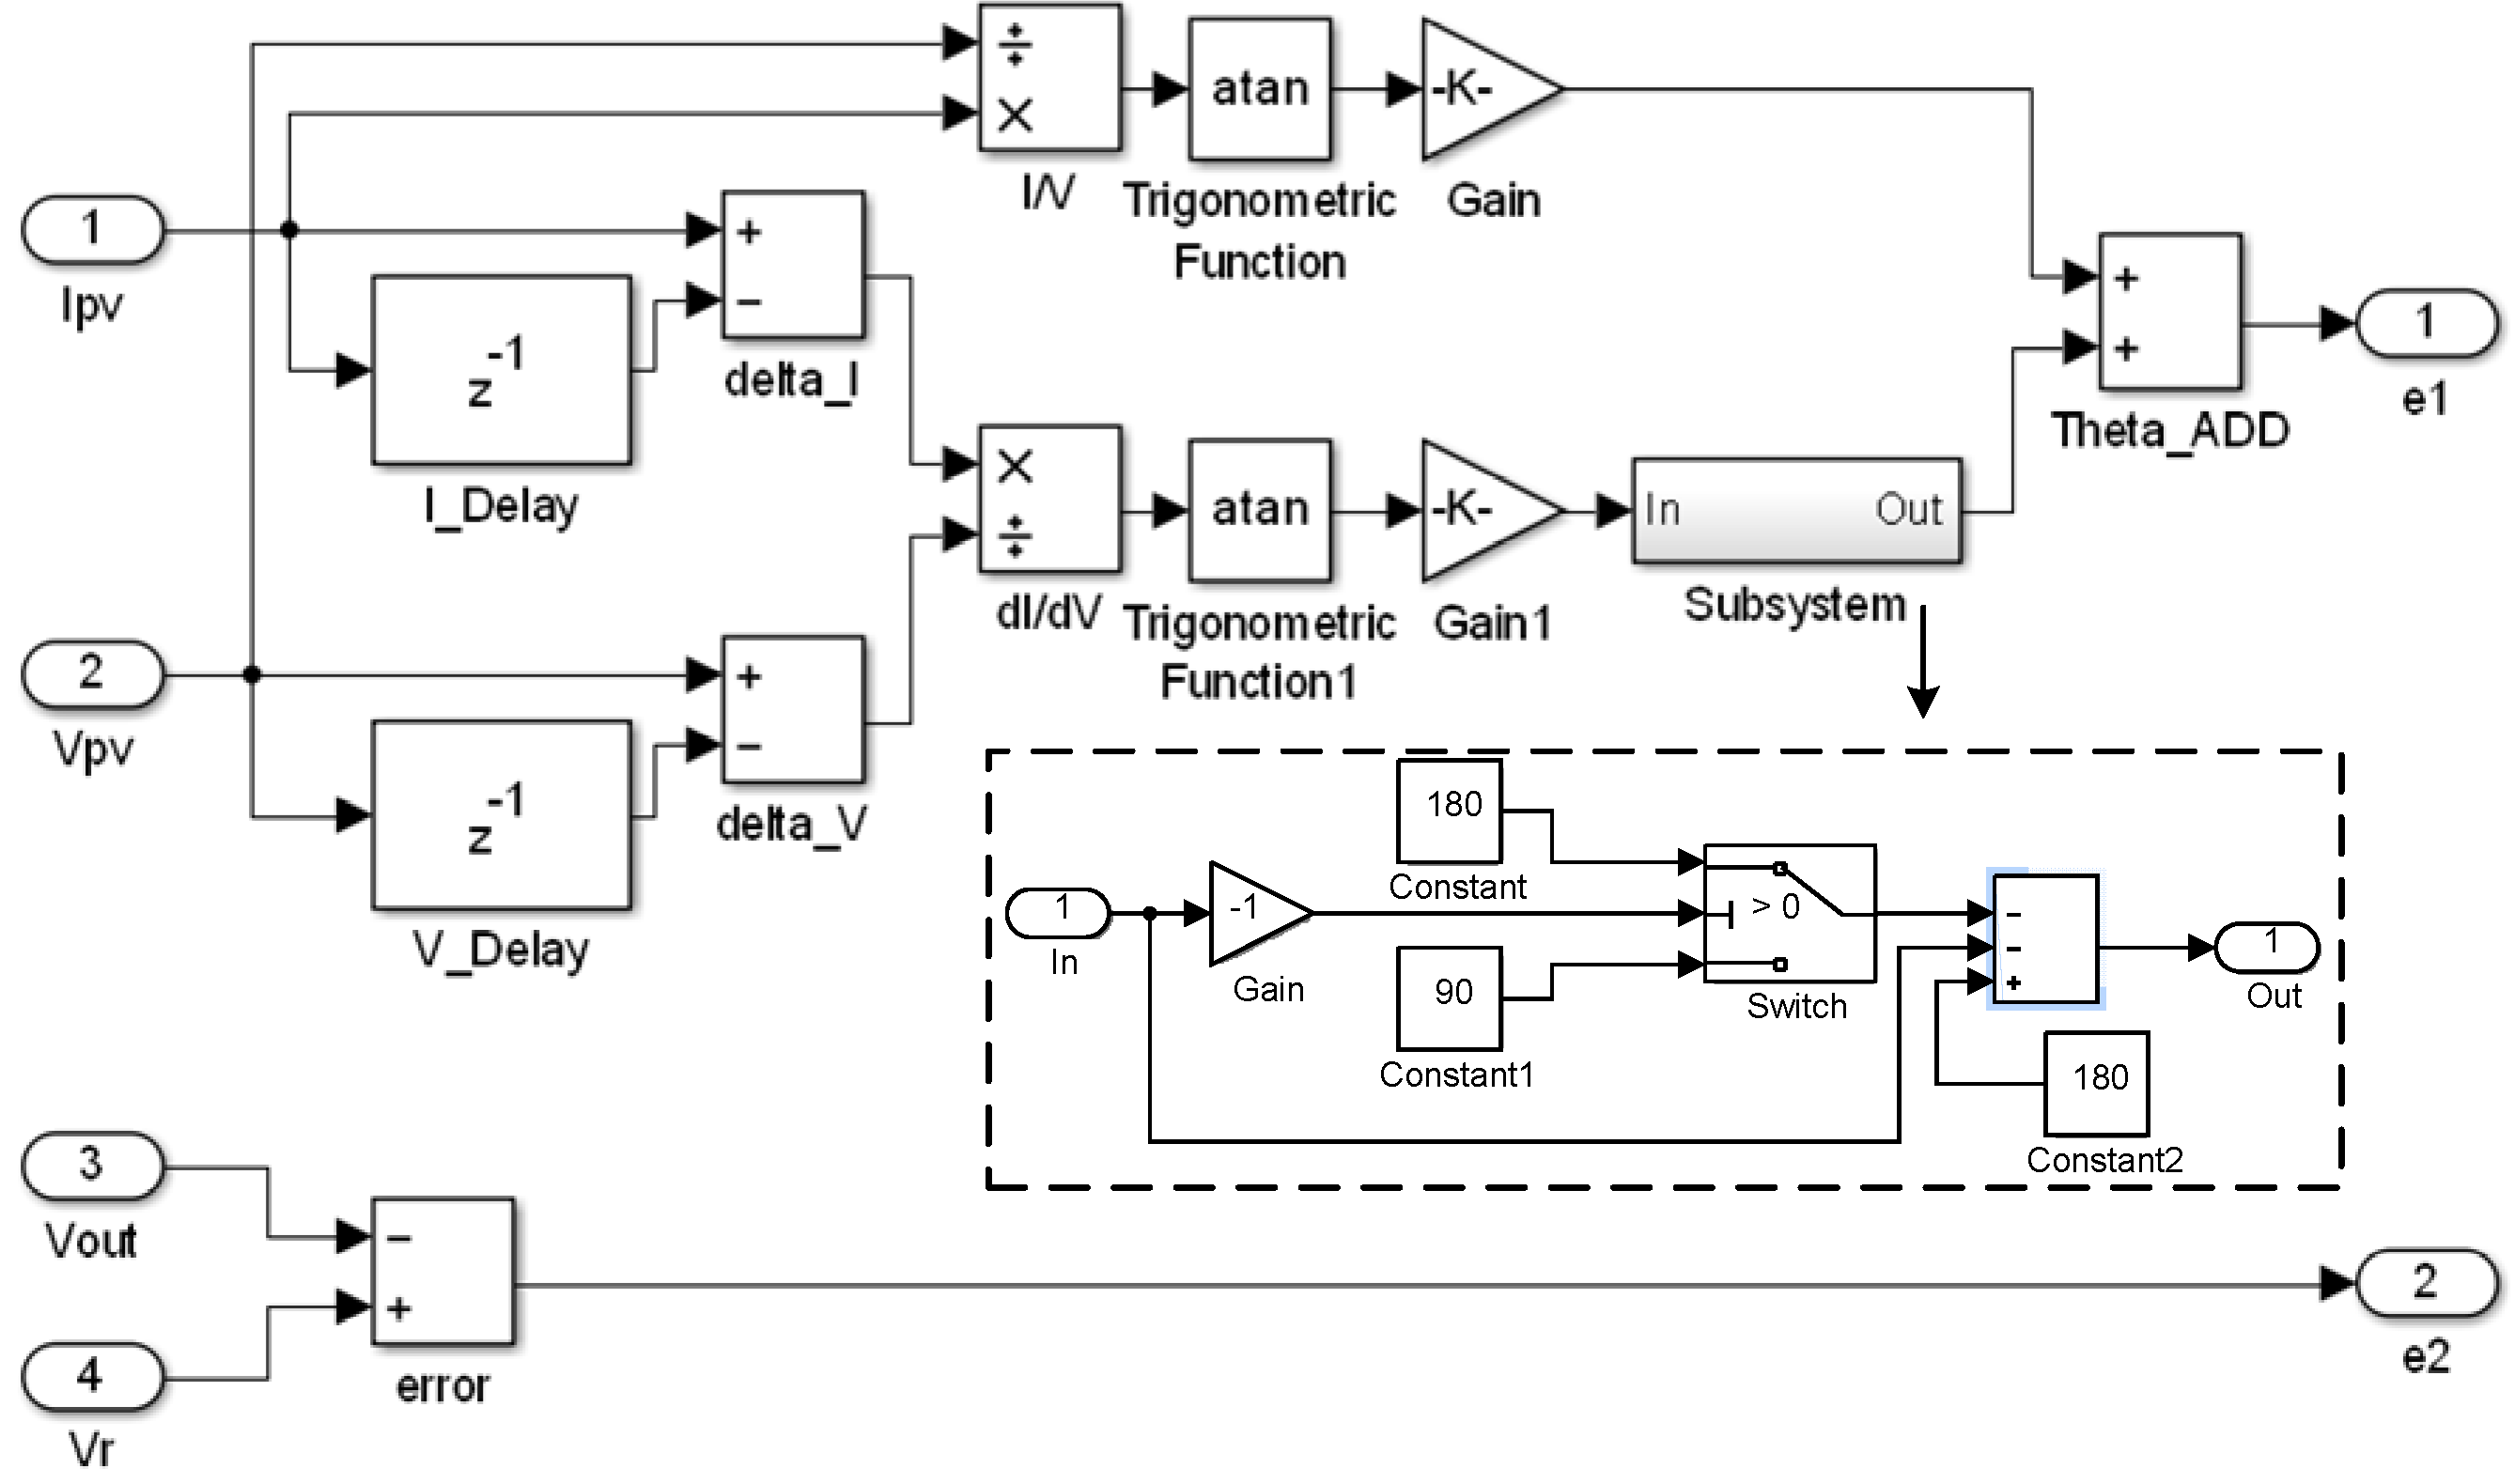 Energies Free Full Text Fuzzy Controller For A Voltage Regulated Mppt Circuit Diagram No